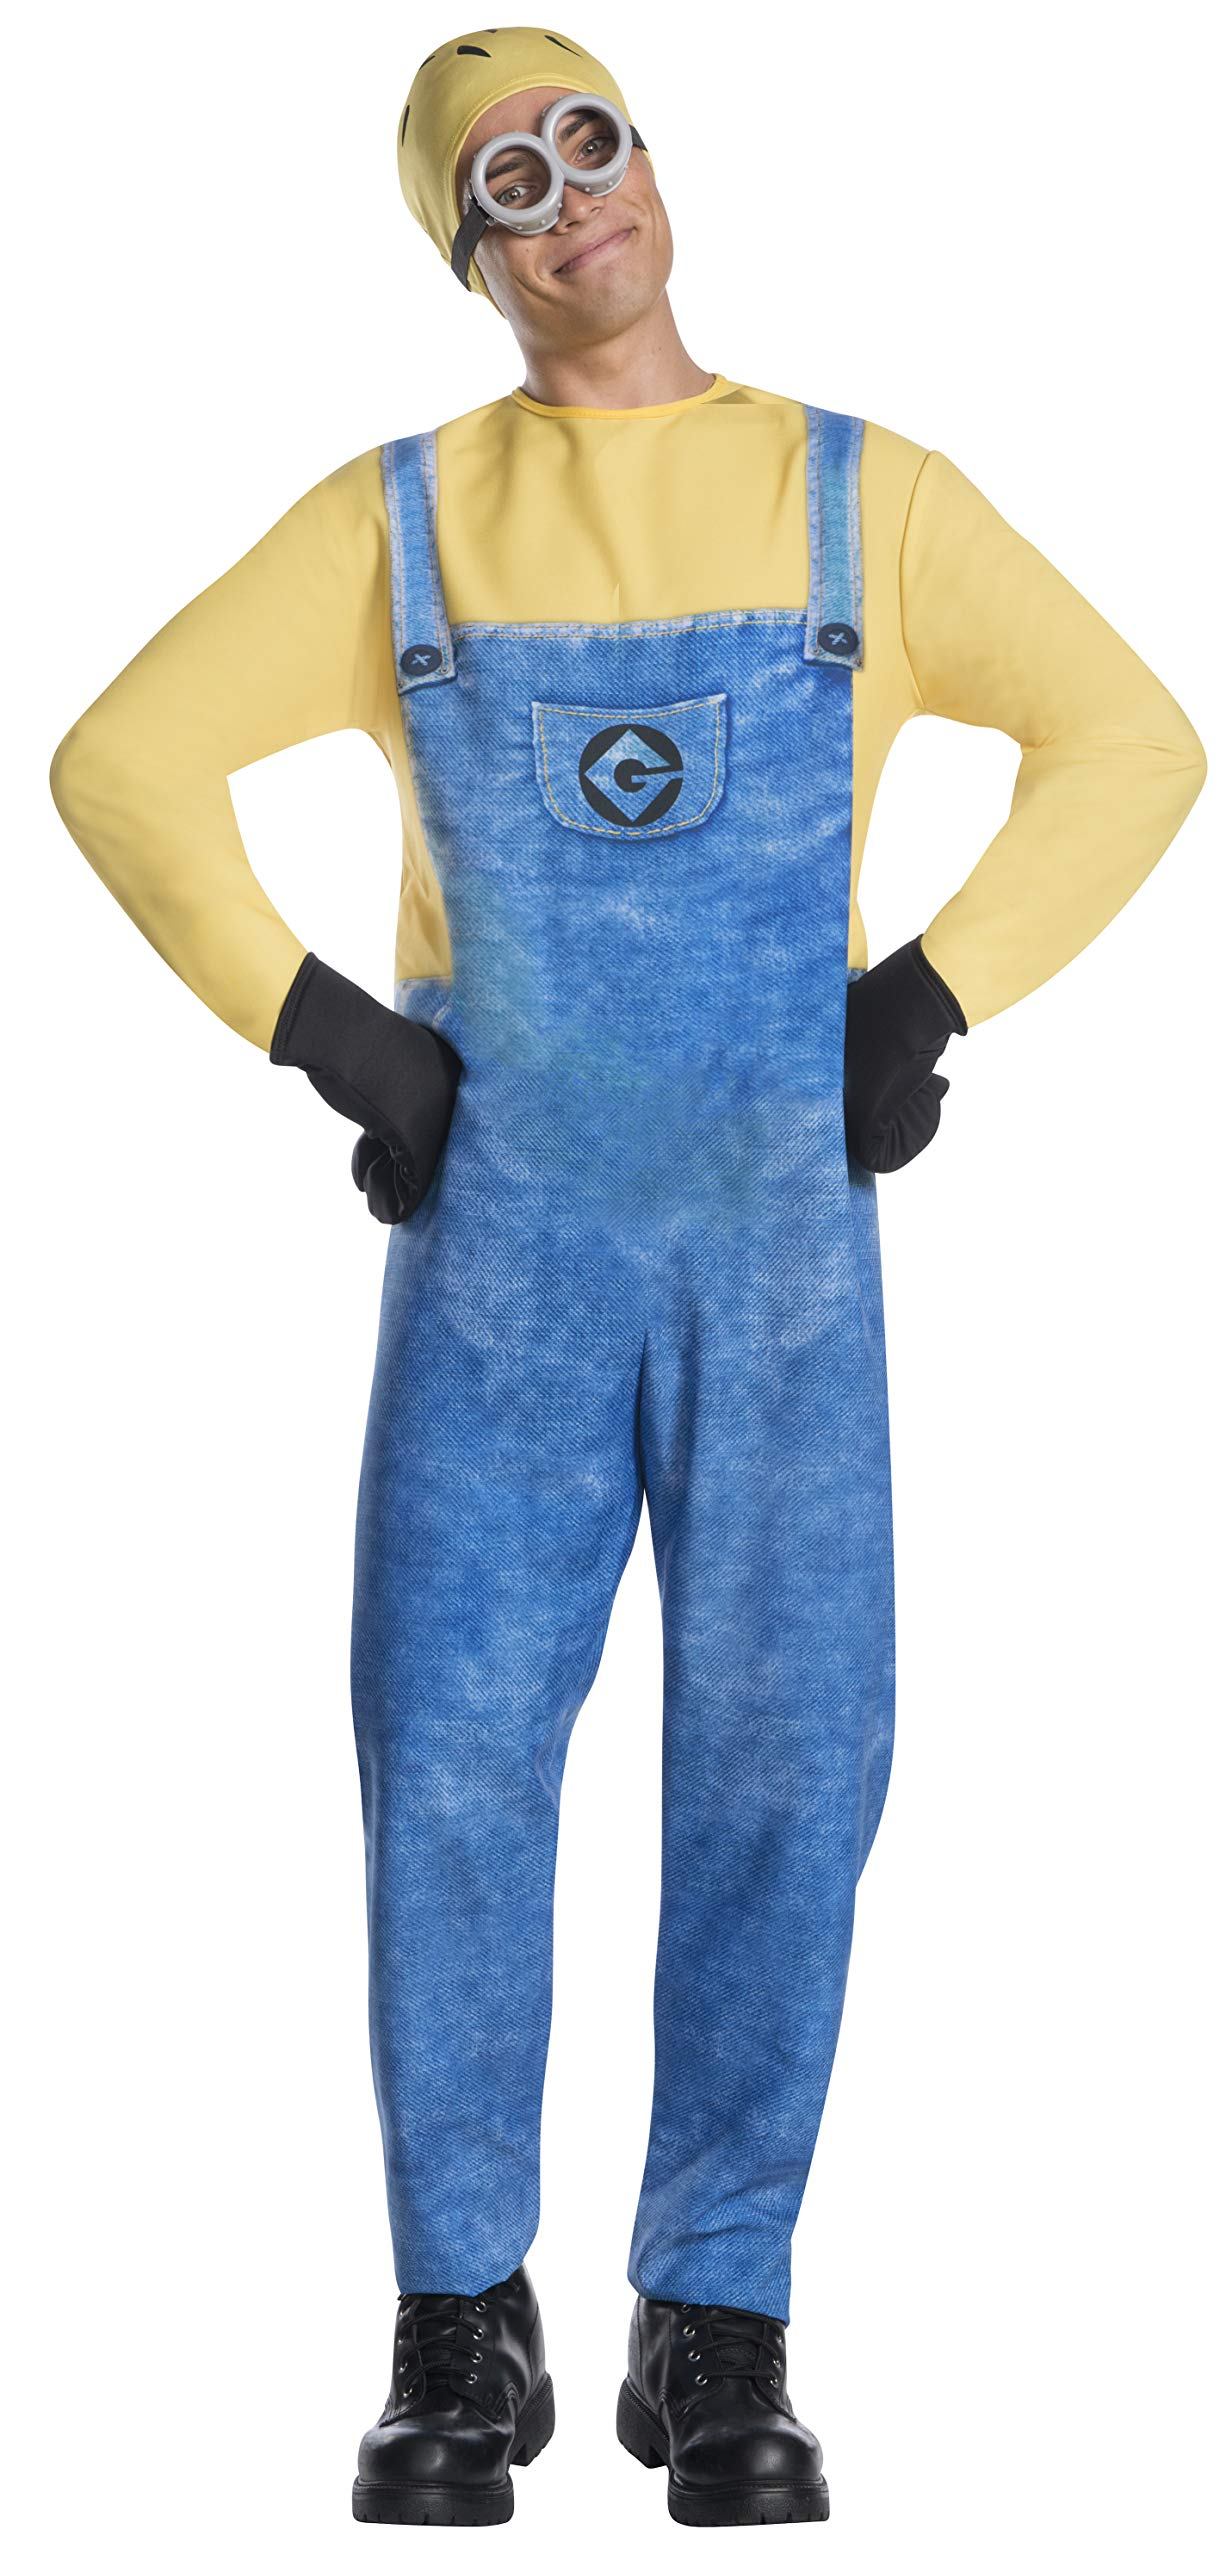 Rubie's Men's Despicable Me 3 Movie Minion Costume, Jerry, Standard